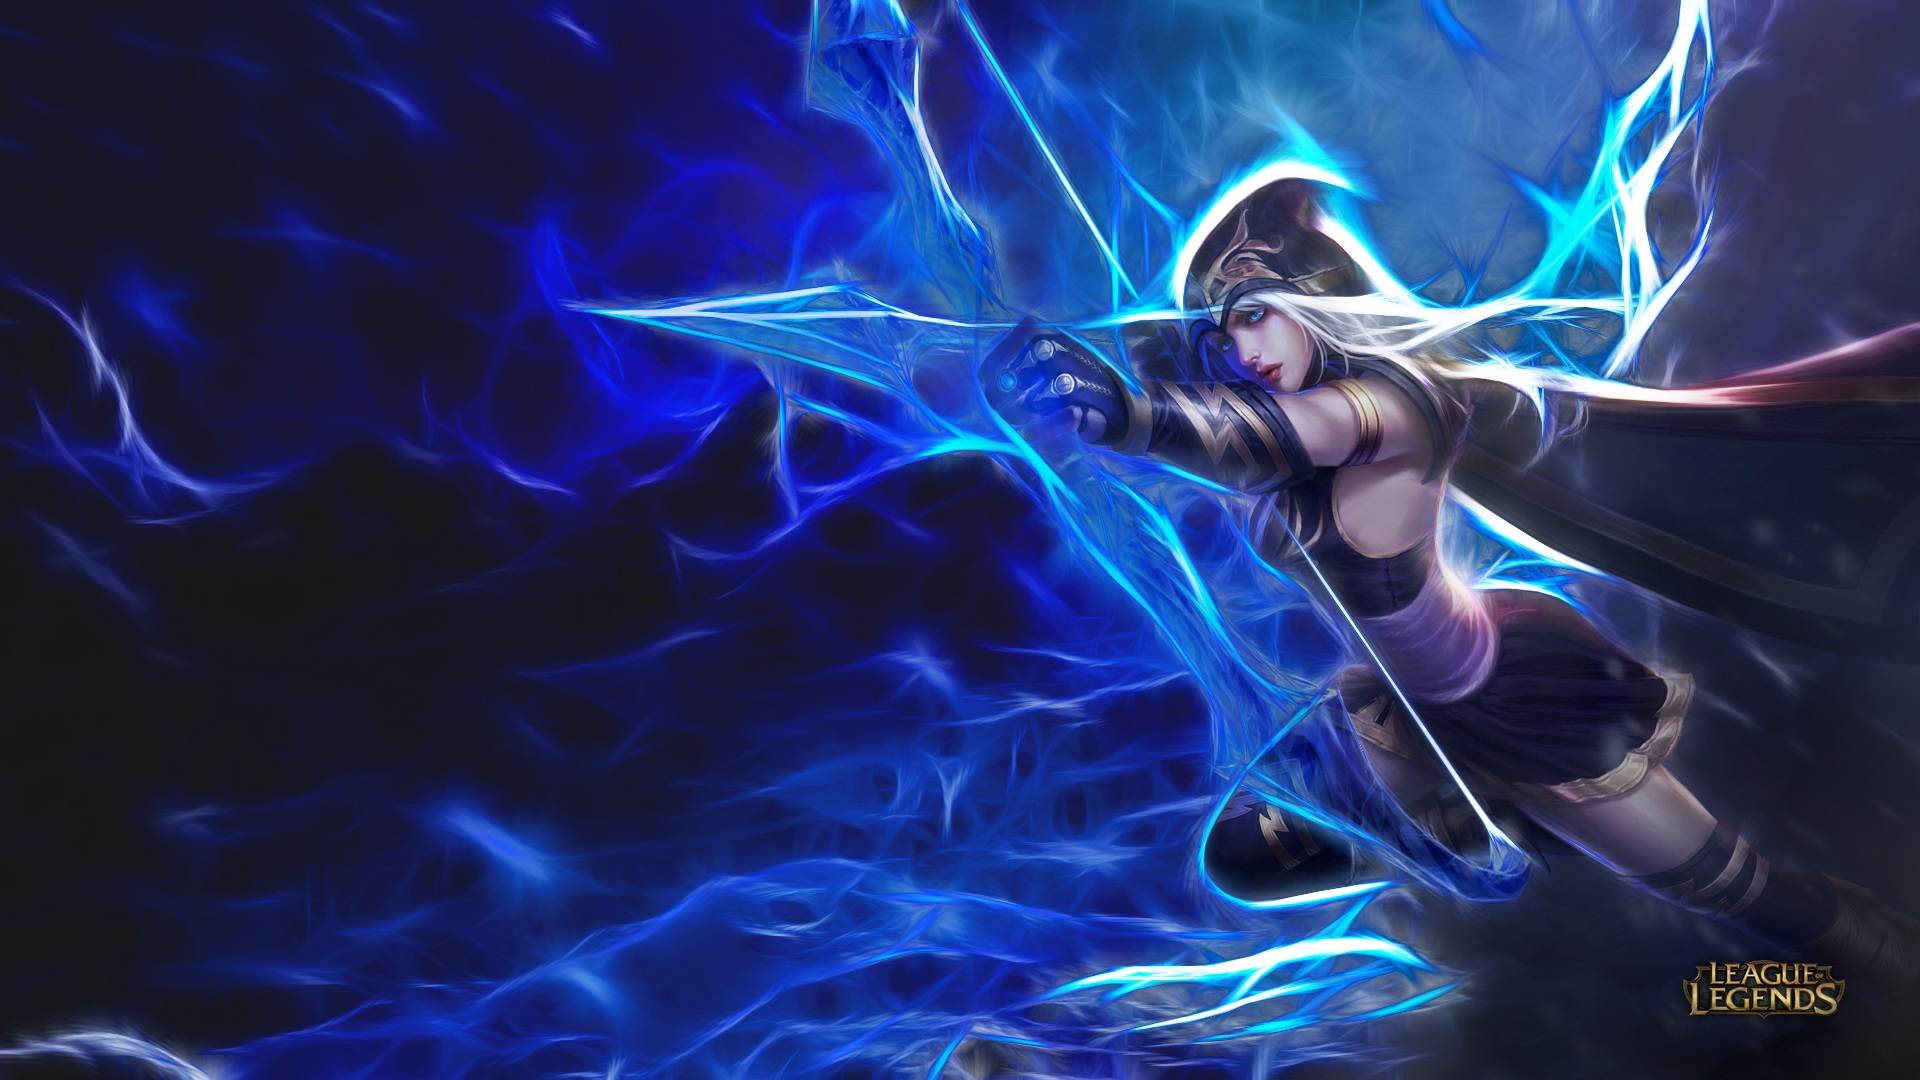 Descargar 3d Image Live Wallpaper Para Android Ashe League Of Legends Archer Artistic Hd Wallpapers For